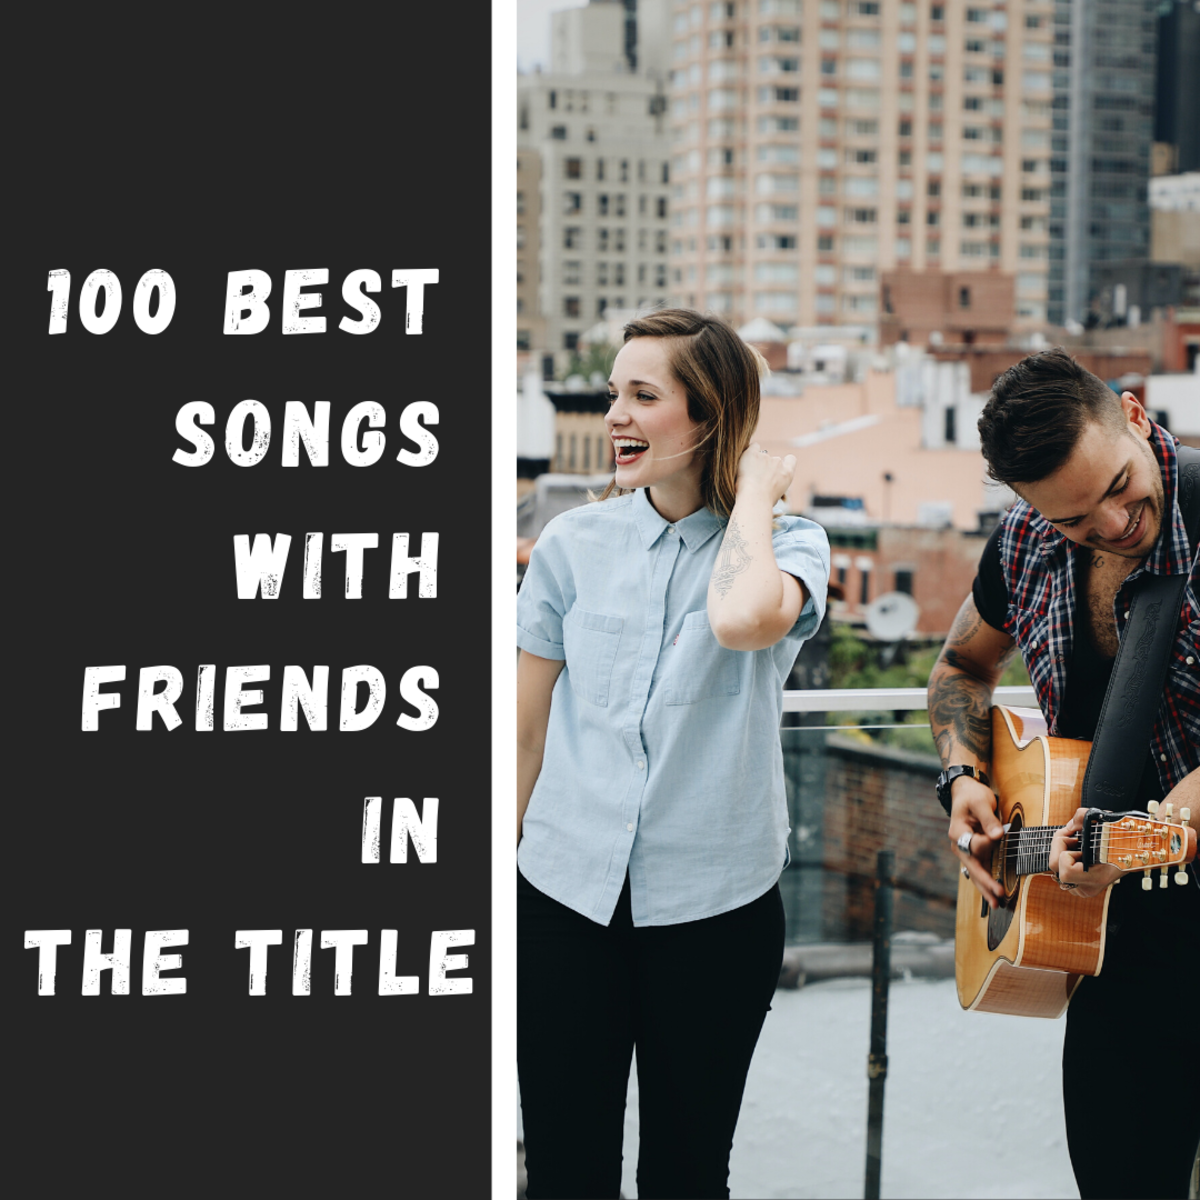 100 Best Songs With the Word Friend in Their Titles